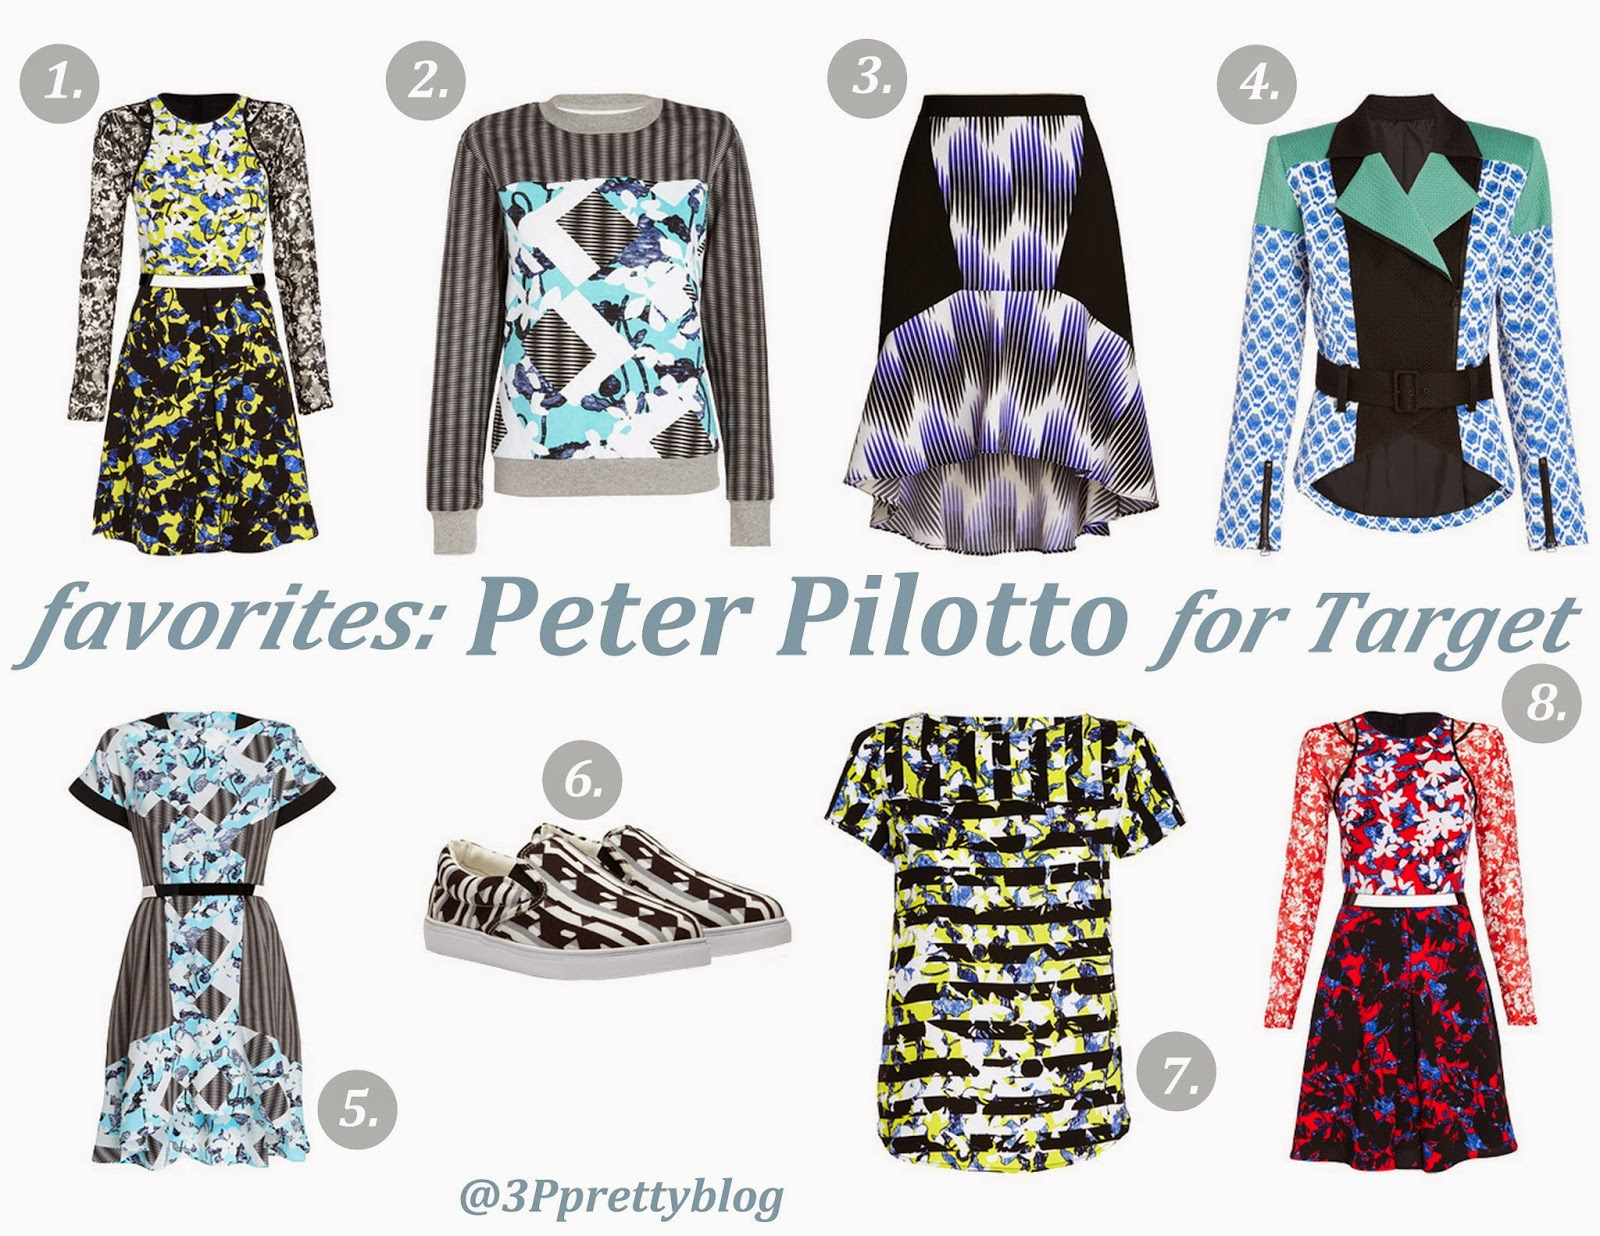 Peter Pilotto for Target favorites